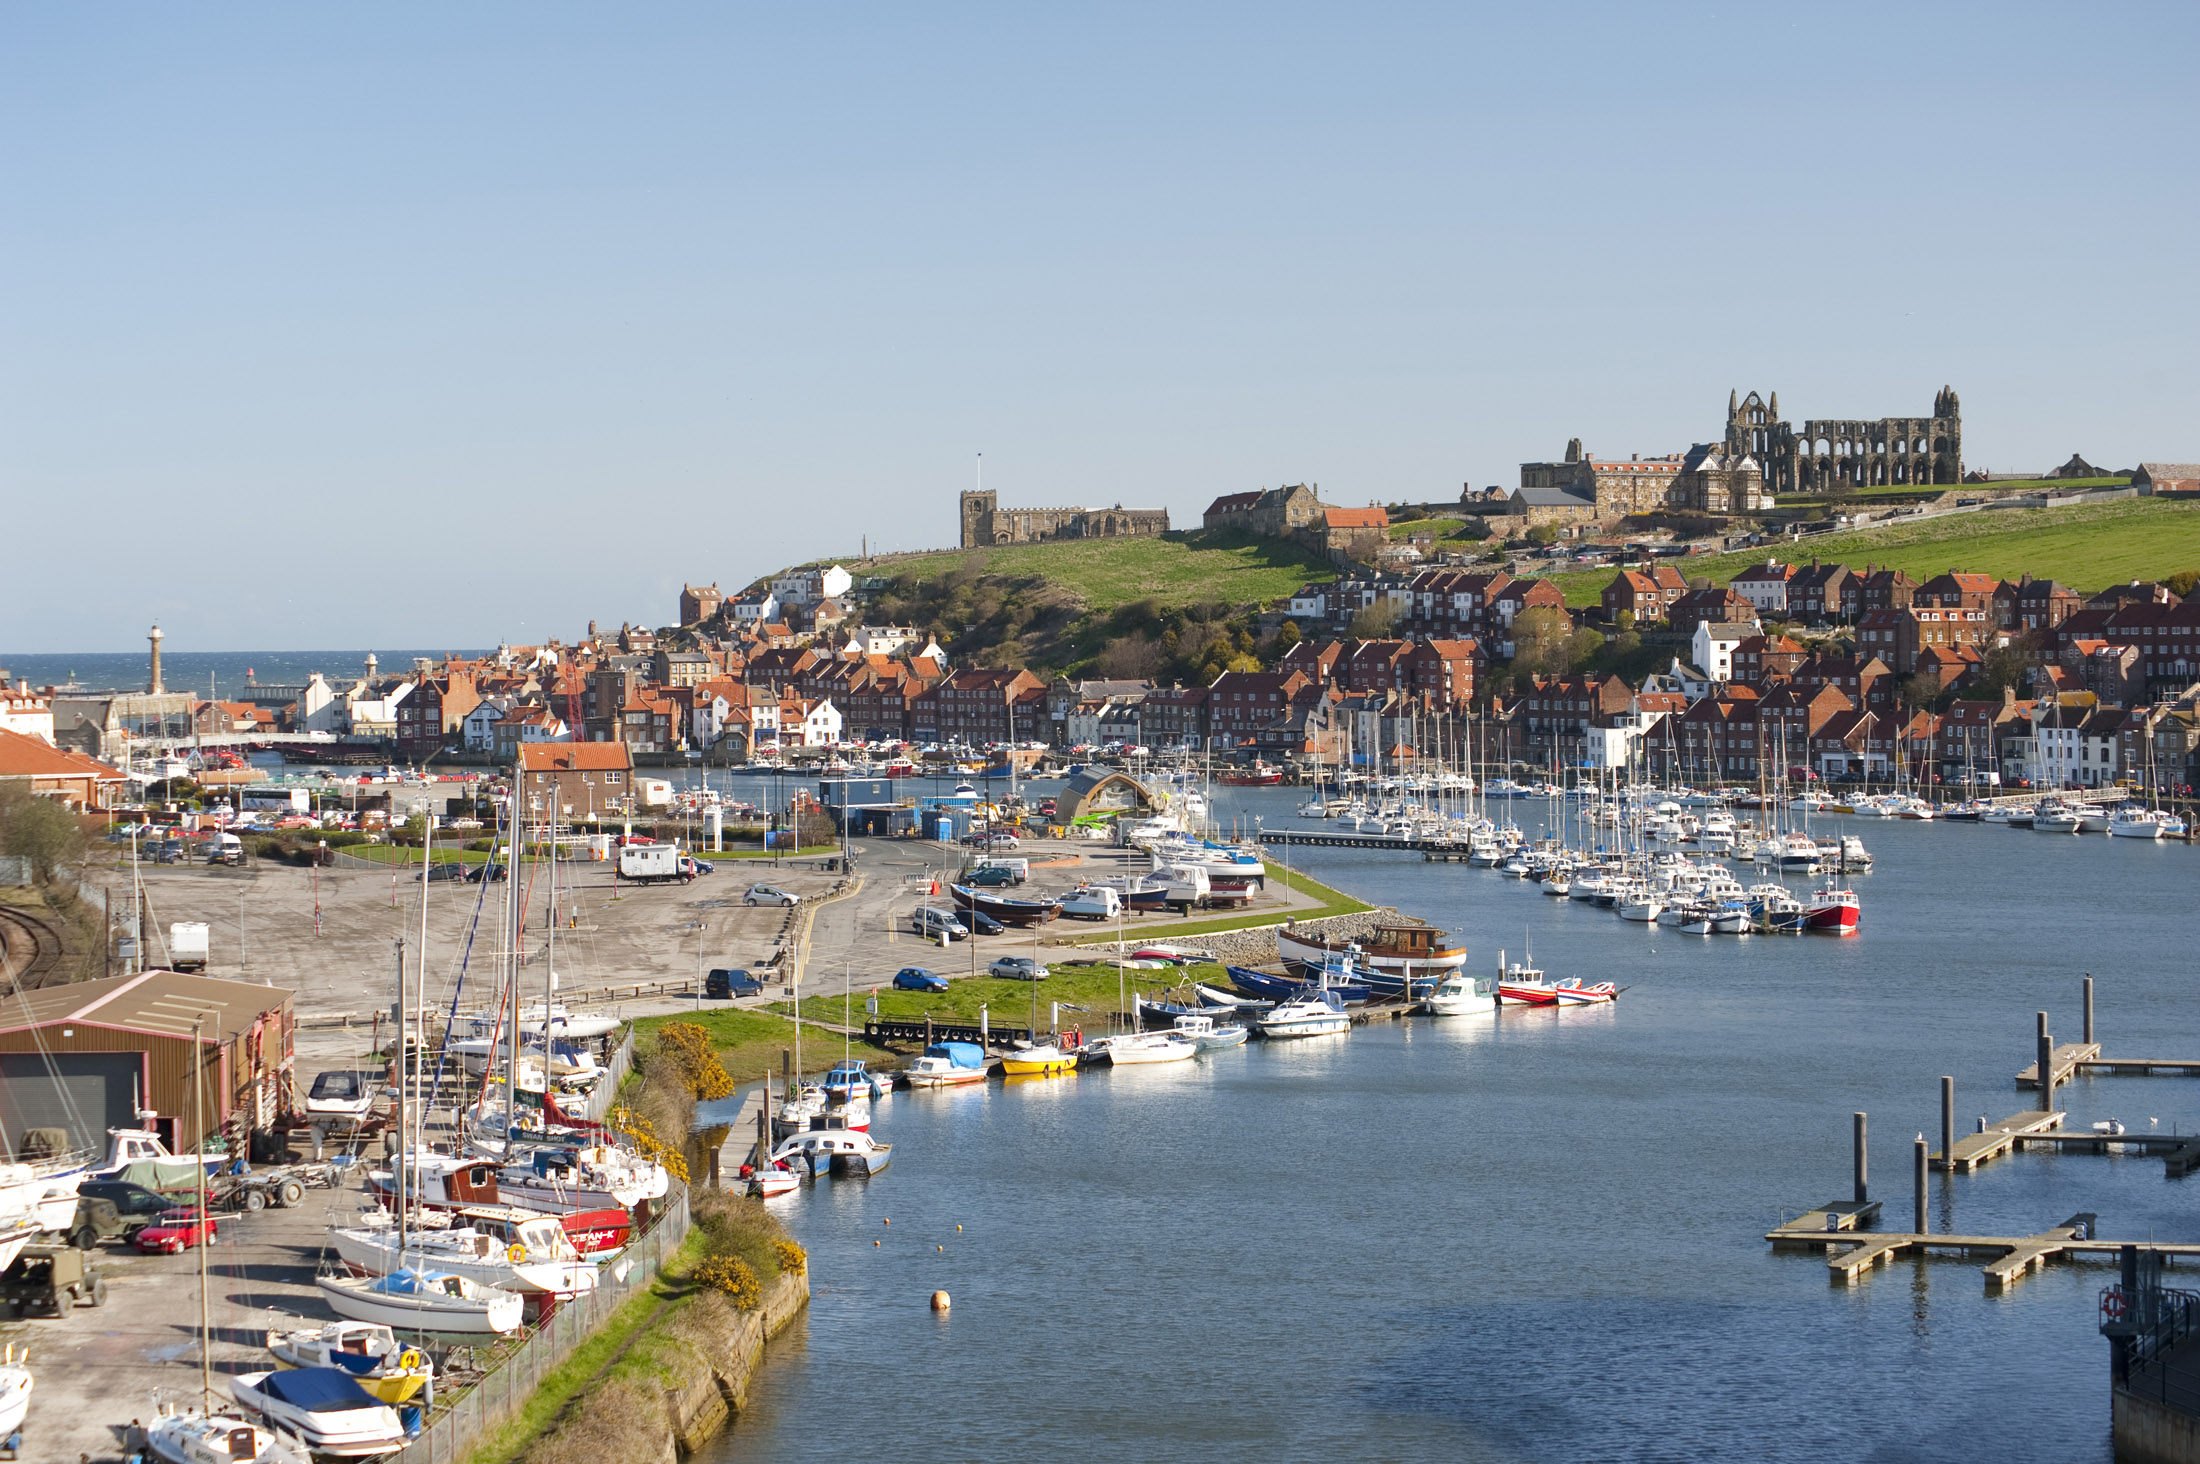 the river esk flowing through the coastal town of whitby